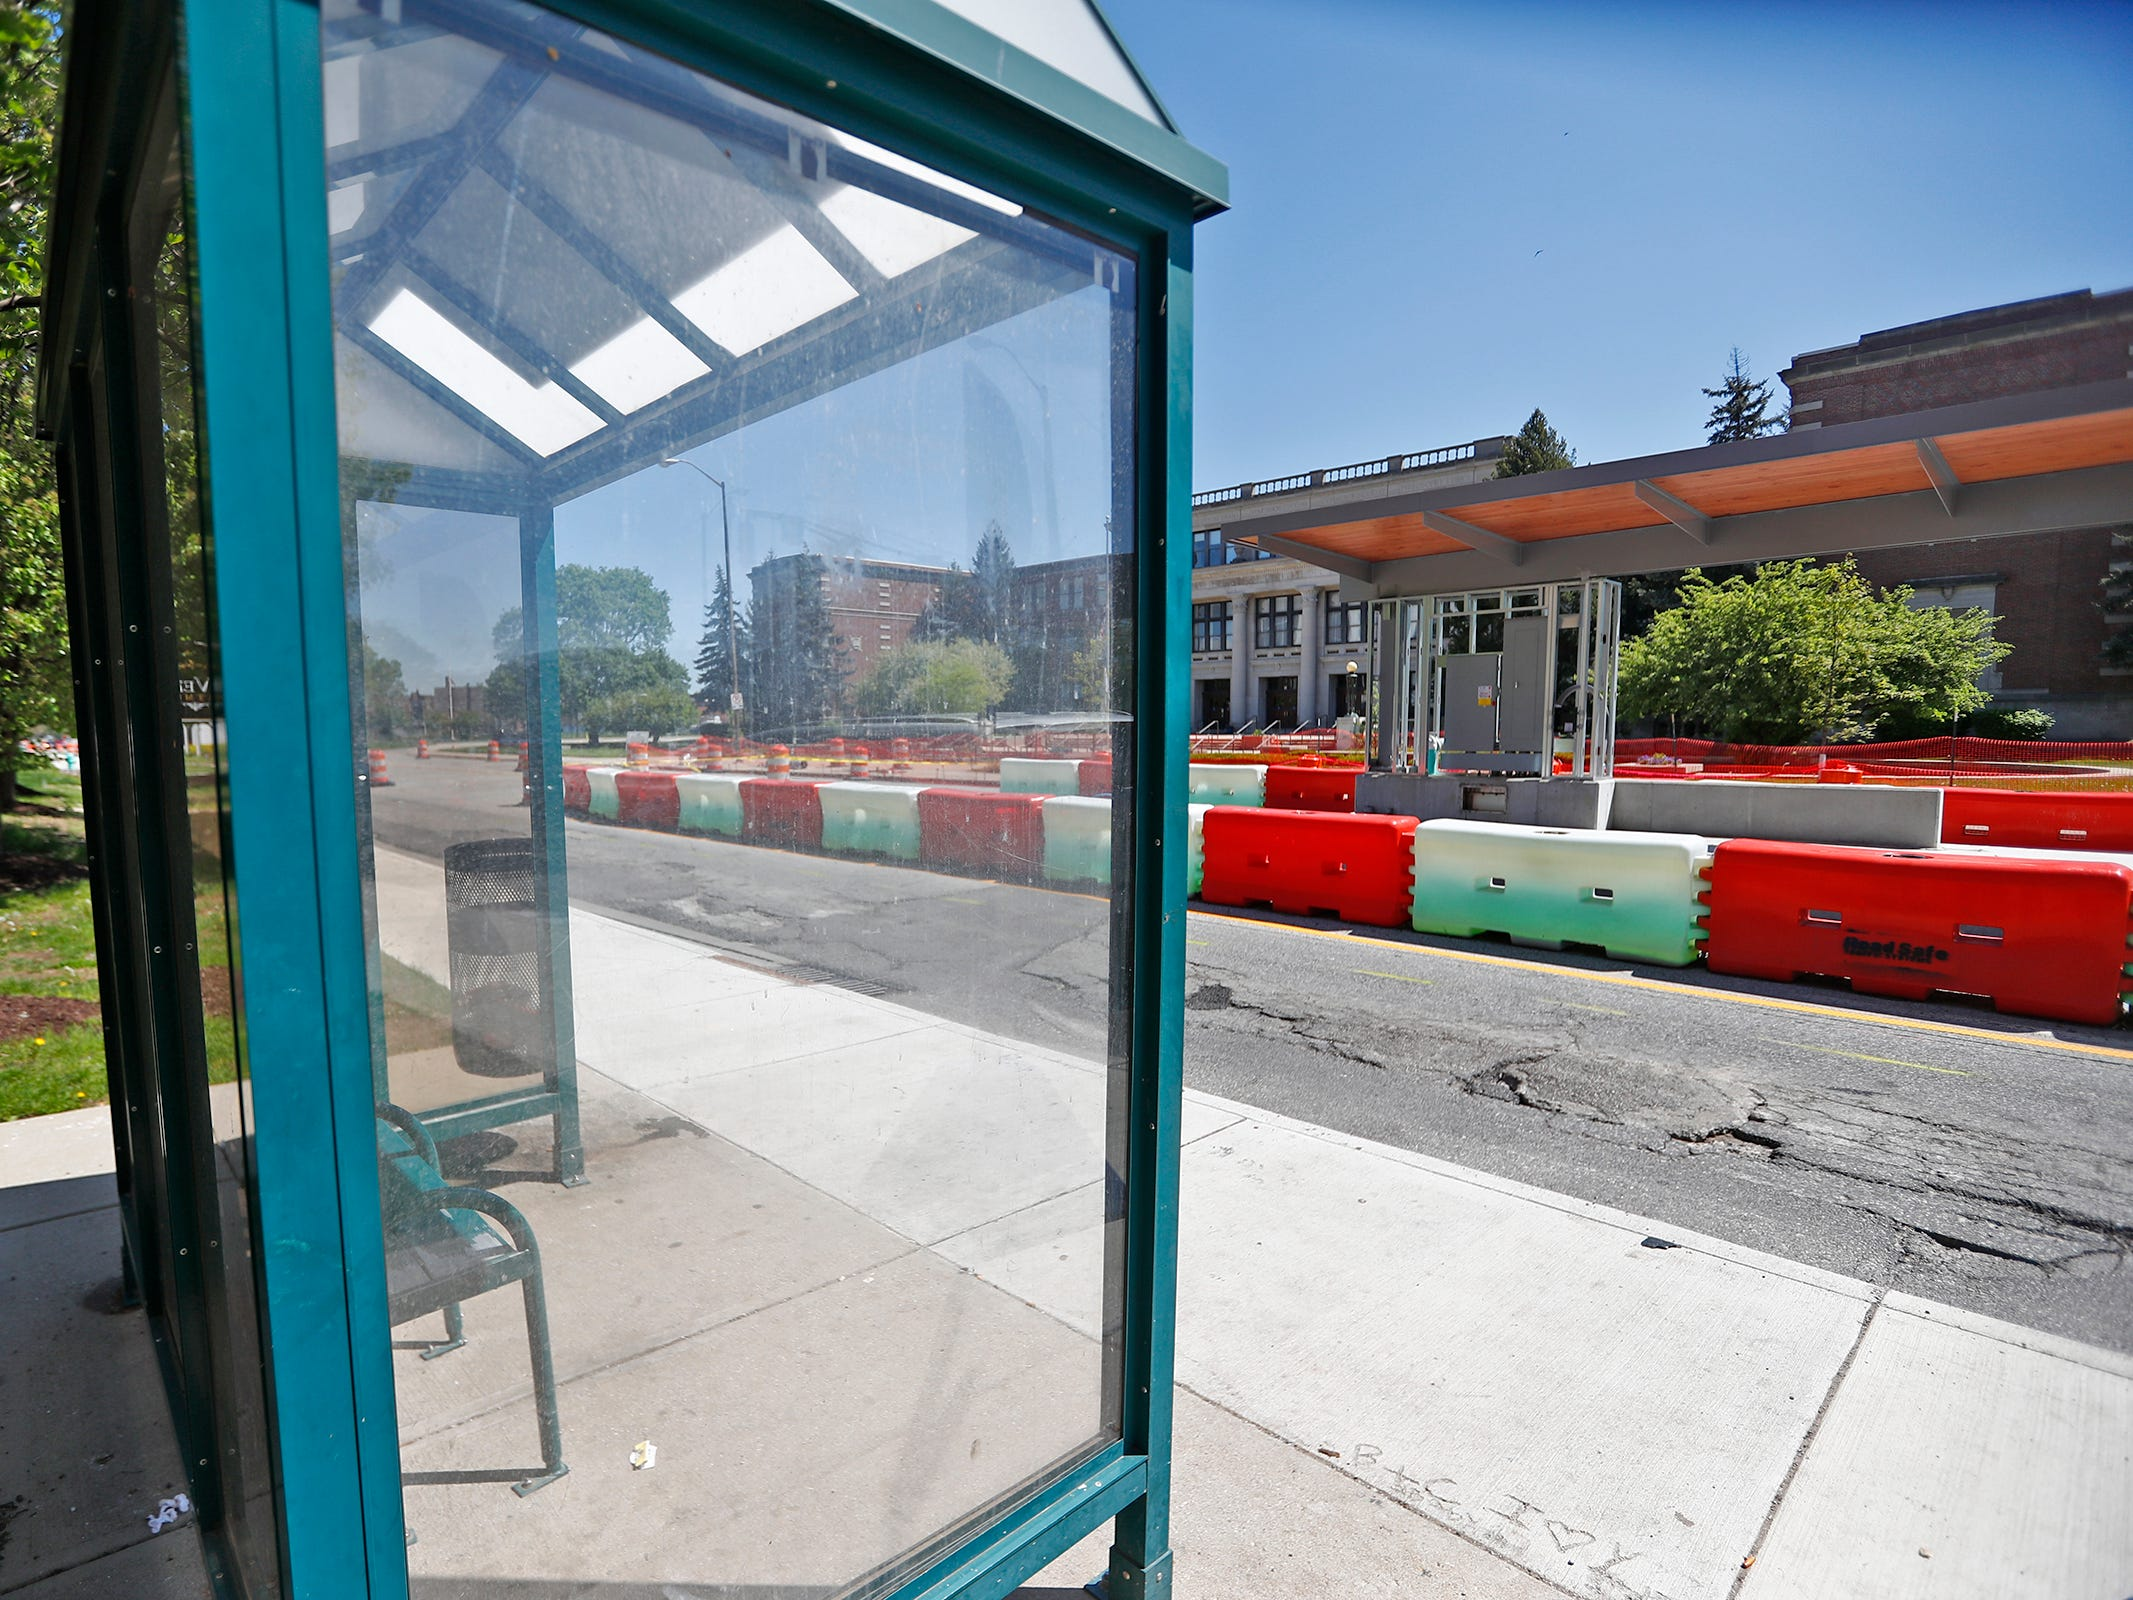 A bus passenger shelter is seen across from Red Line construction in the 3400 block of Meridian St., Sunday, May 5, 2019.  The City has updated the timeline when the Red Line Bus Rapid Transit system should open, which is later in 2019 summer.